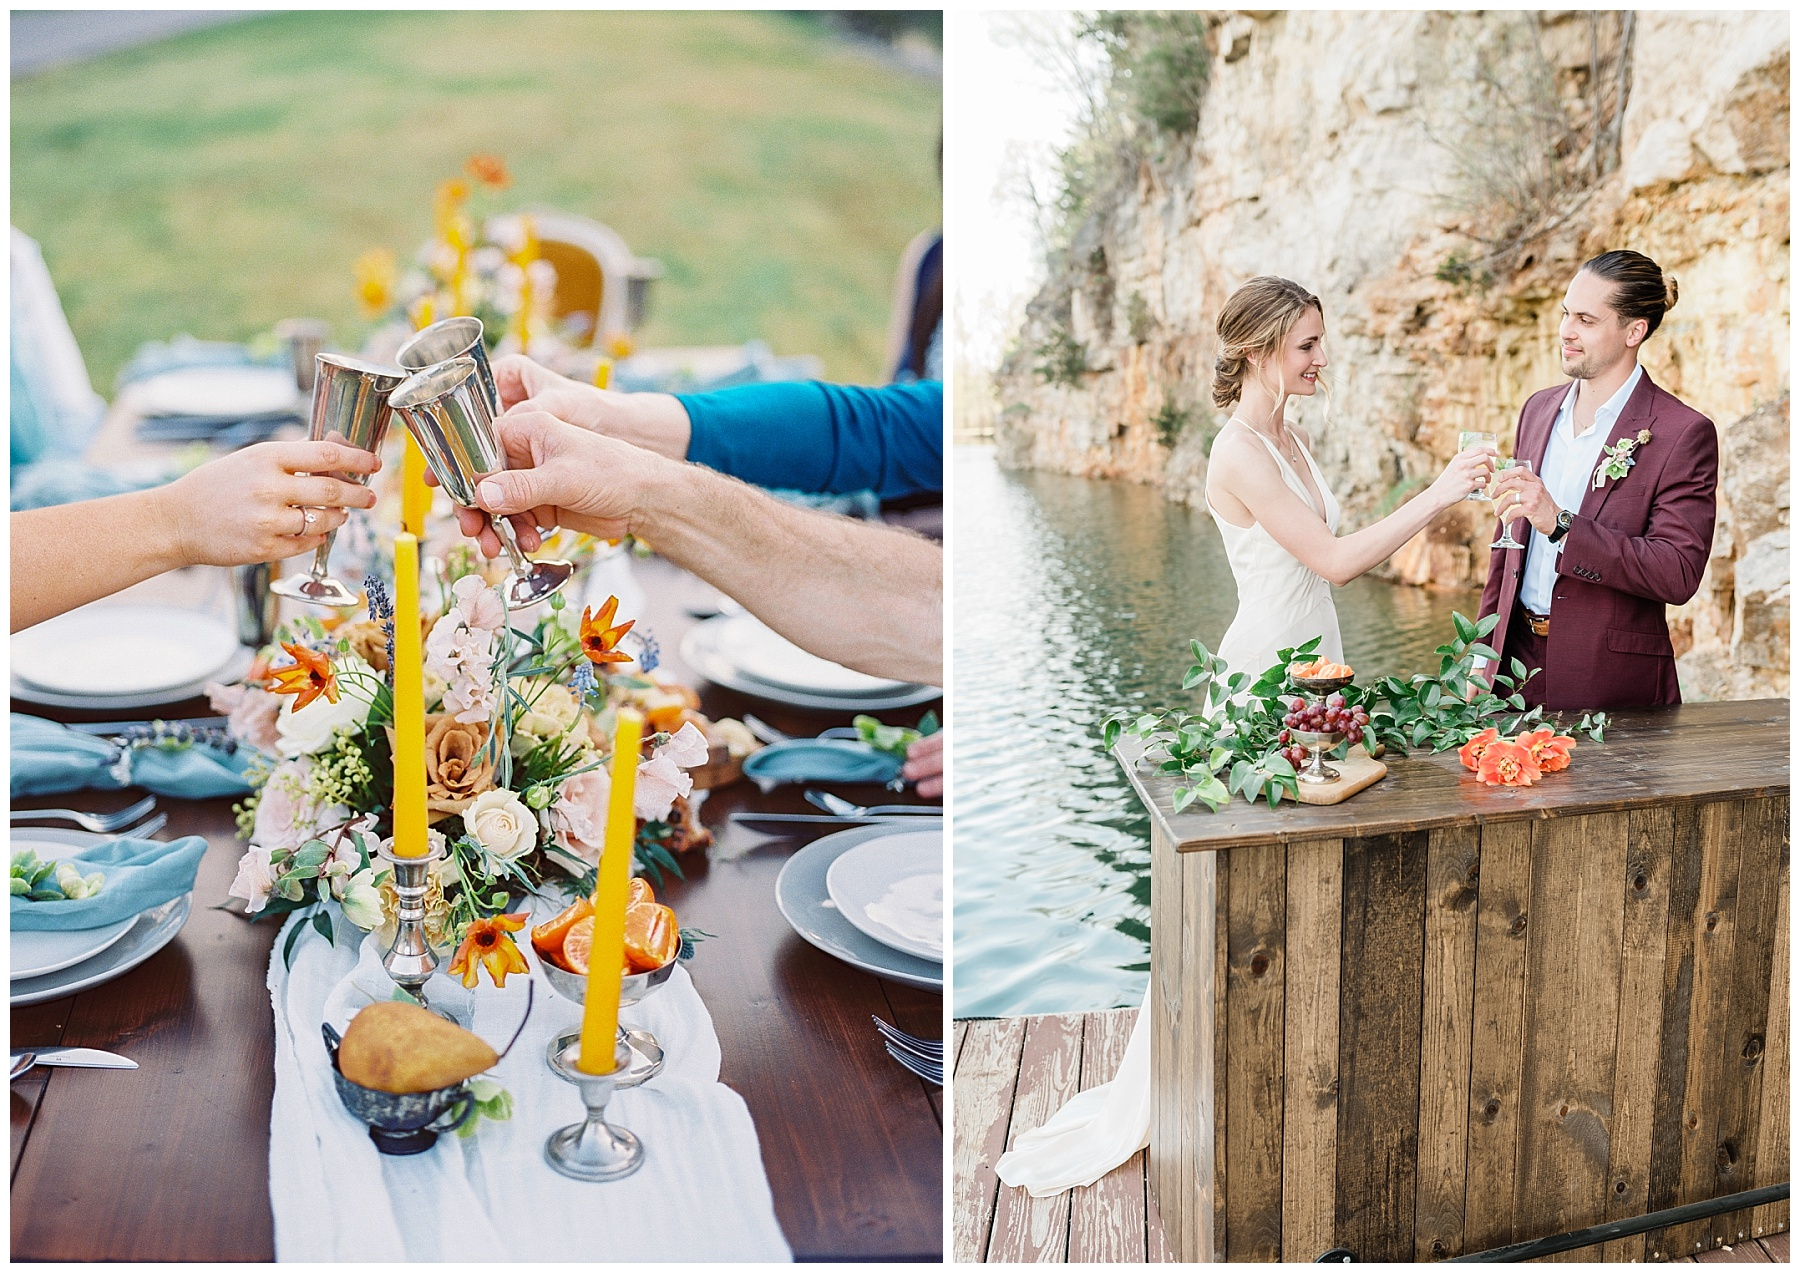 Intimate Spanish and French Inspired Destination Wedding with Lakeside Dinner Party at Dusk at Wildcliff by Kelsi Kliethermes Photography Best Missouri and Maui Wedding Photographer_0027.jpg